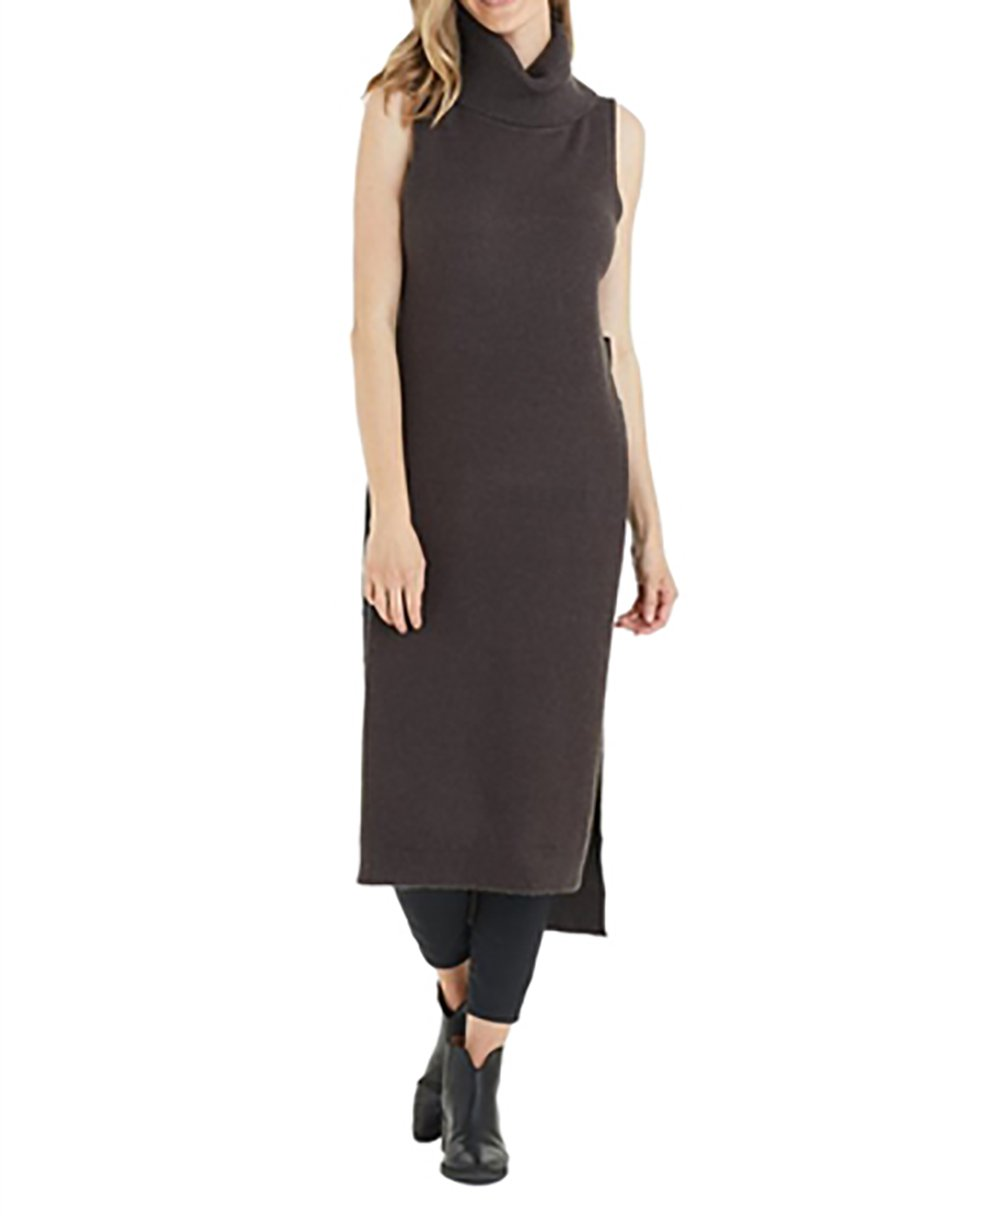 Love Token Camille Open Sides Top In Charcoal (Medium)